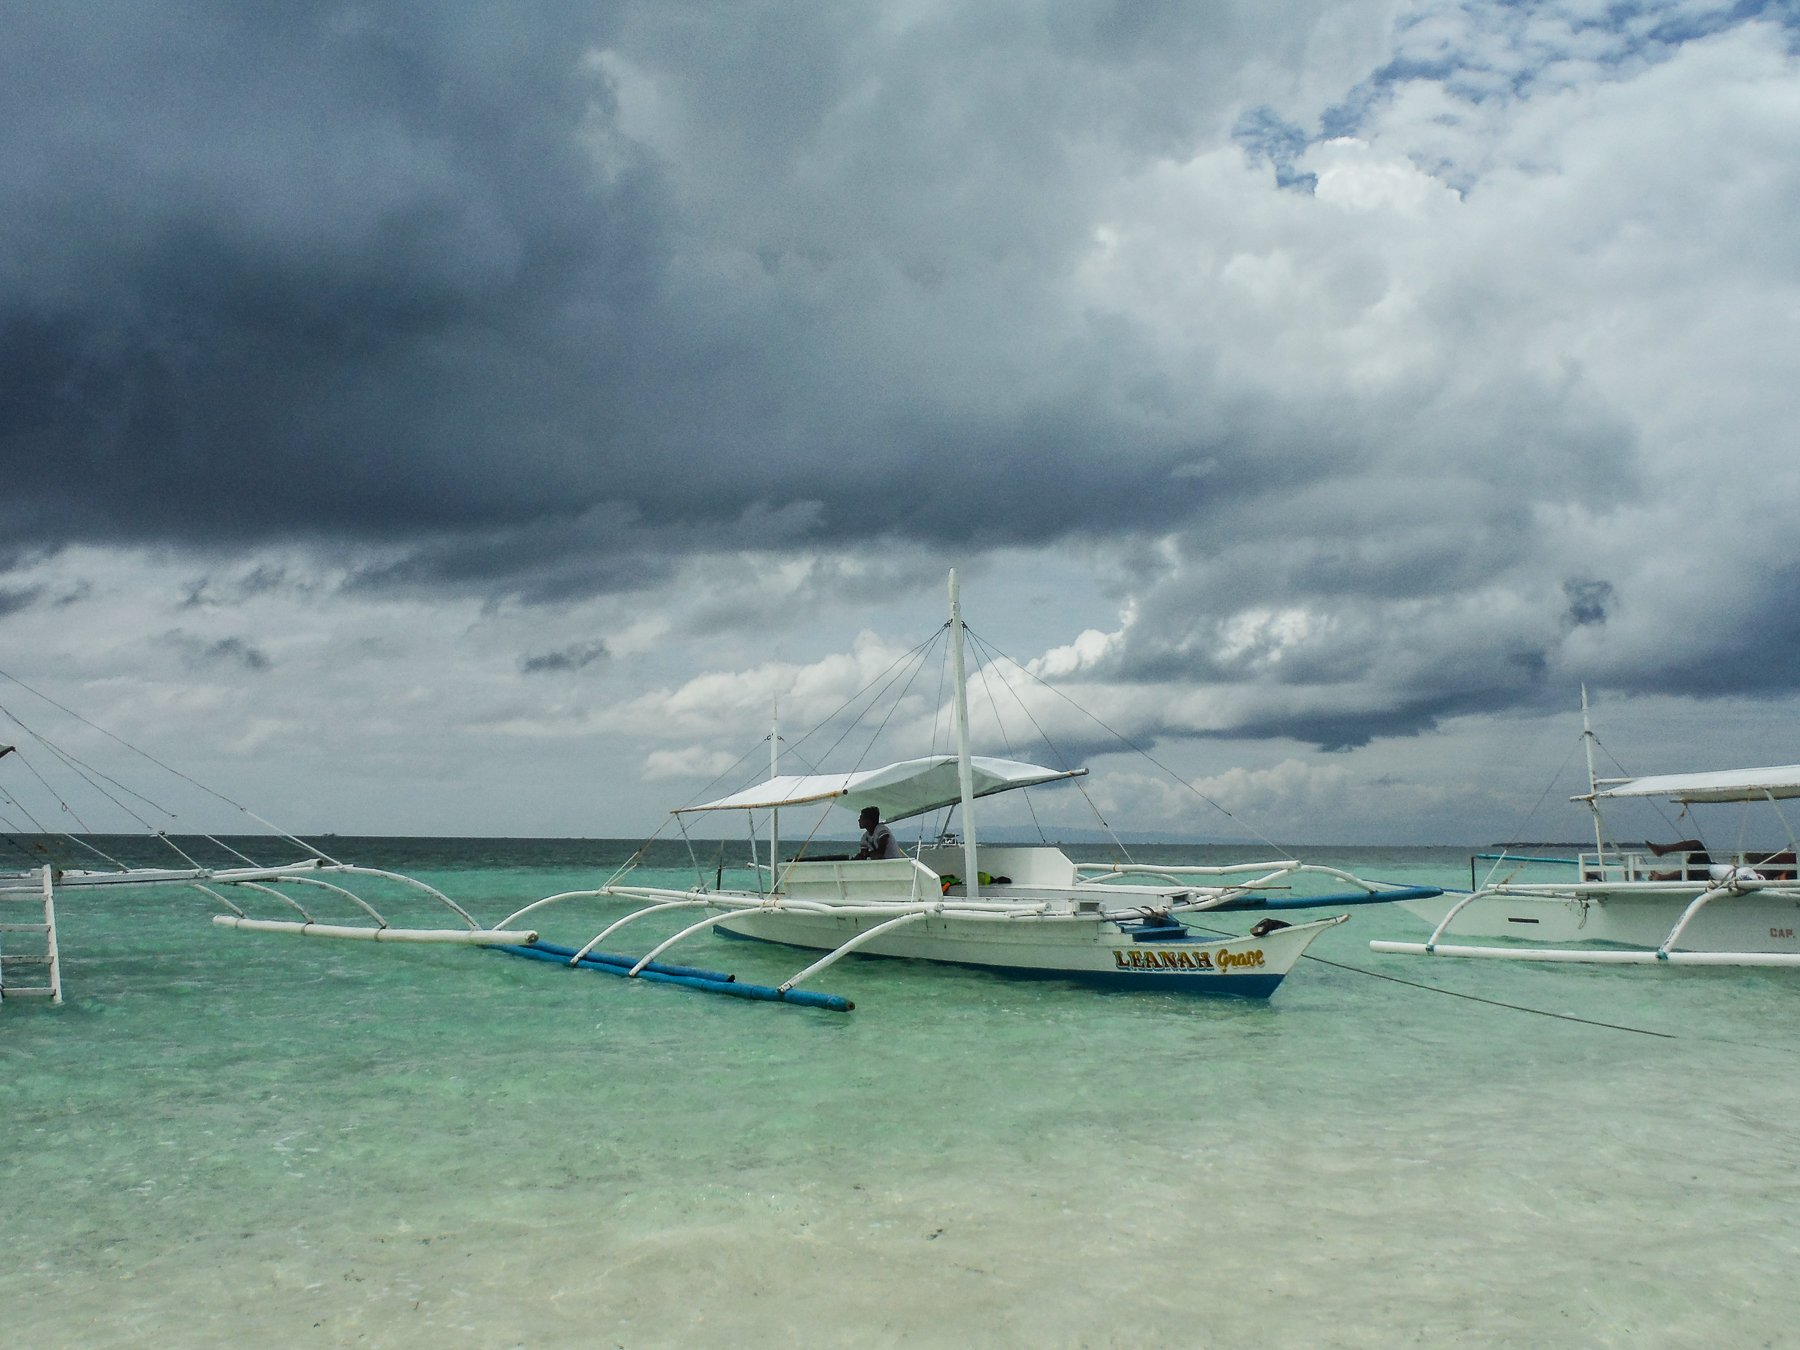 Boat moored to the sand dune at Virgin island in Panglao - Why we won't recommend Island hopping in Panglao